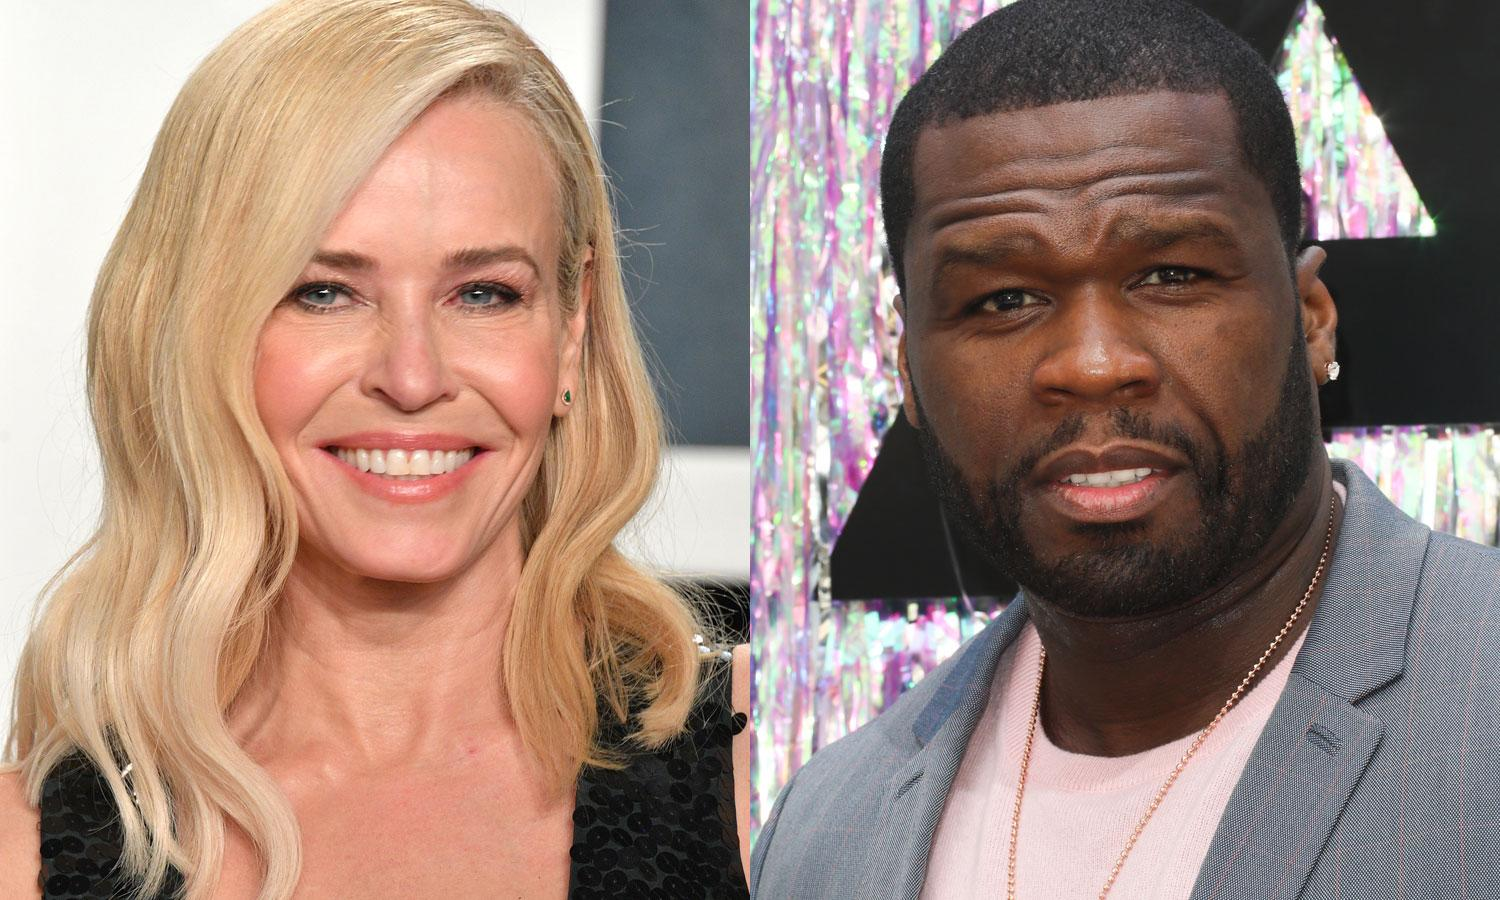 Chelsea Handler tells 50 Cent 'Black Lives Matter' after rapper endorses Trump: 'Remember?'